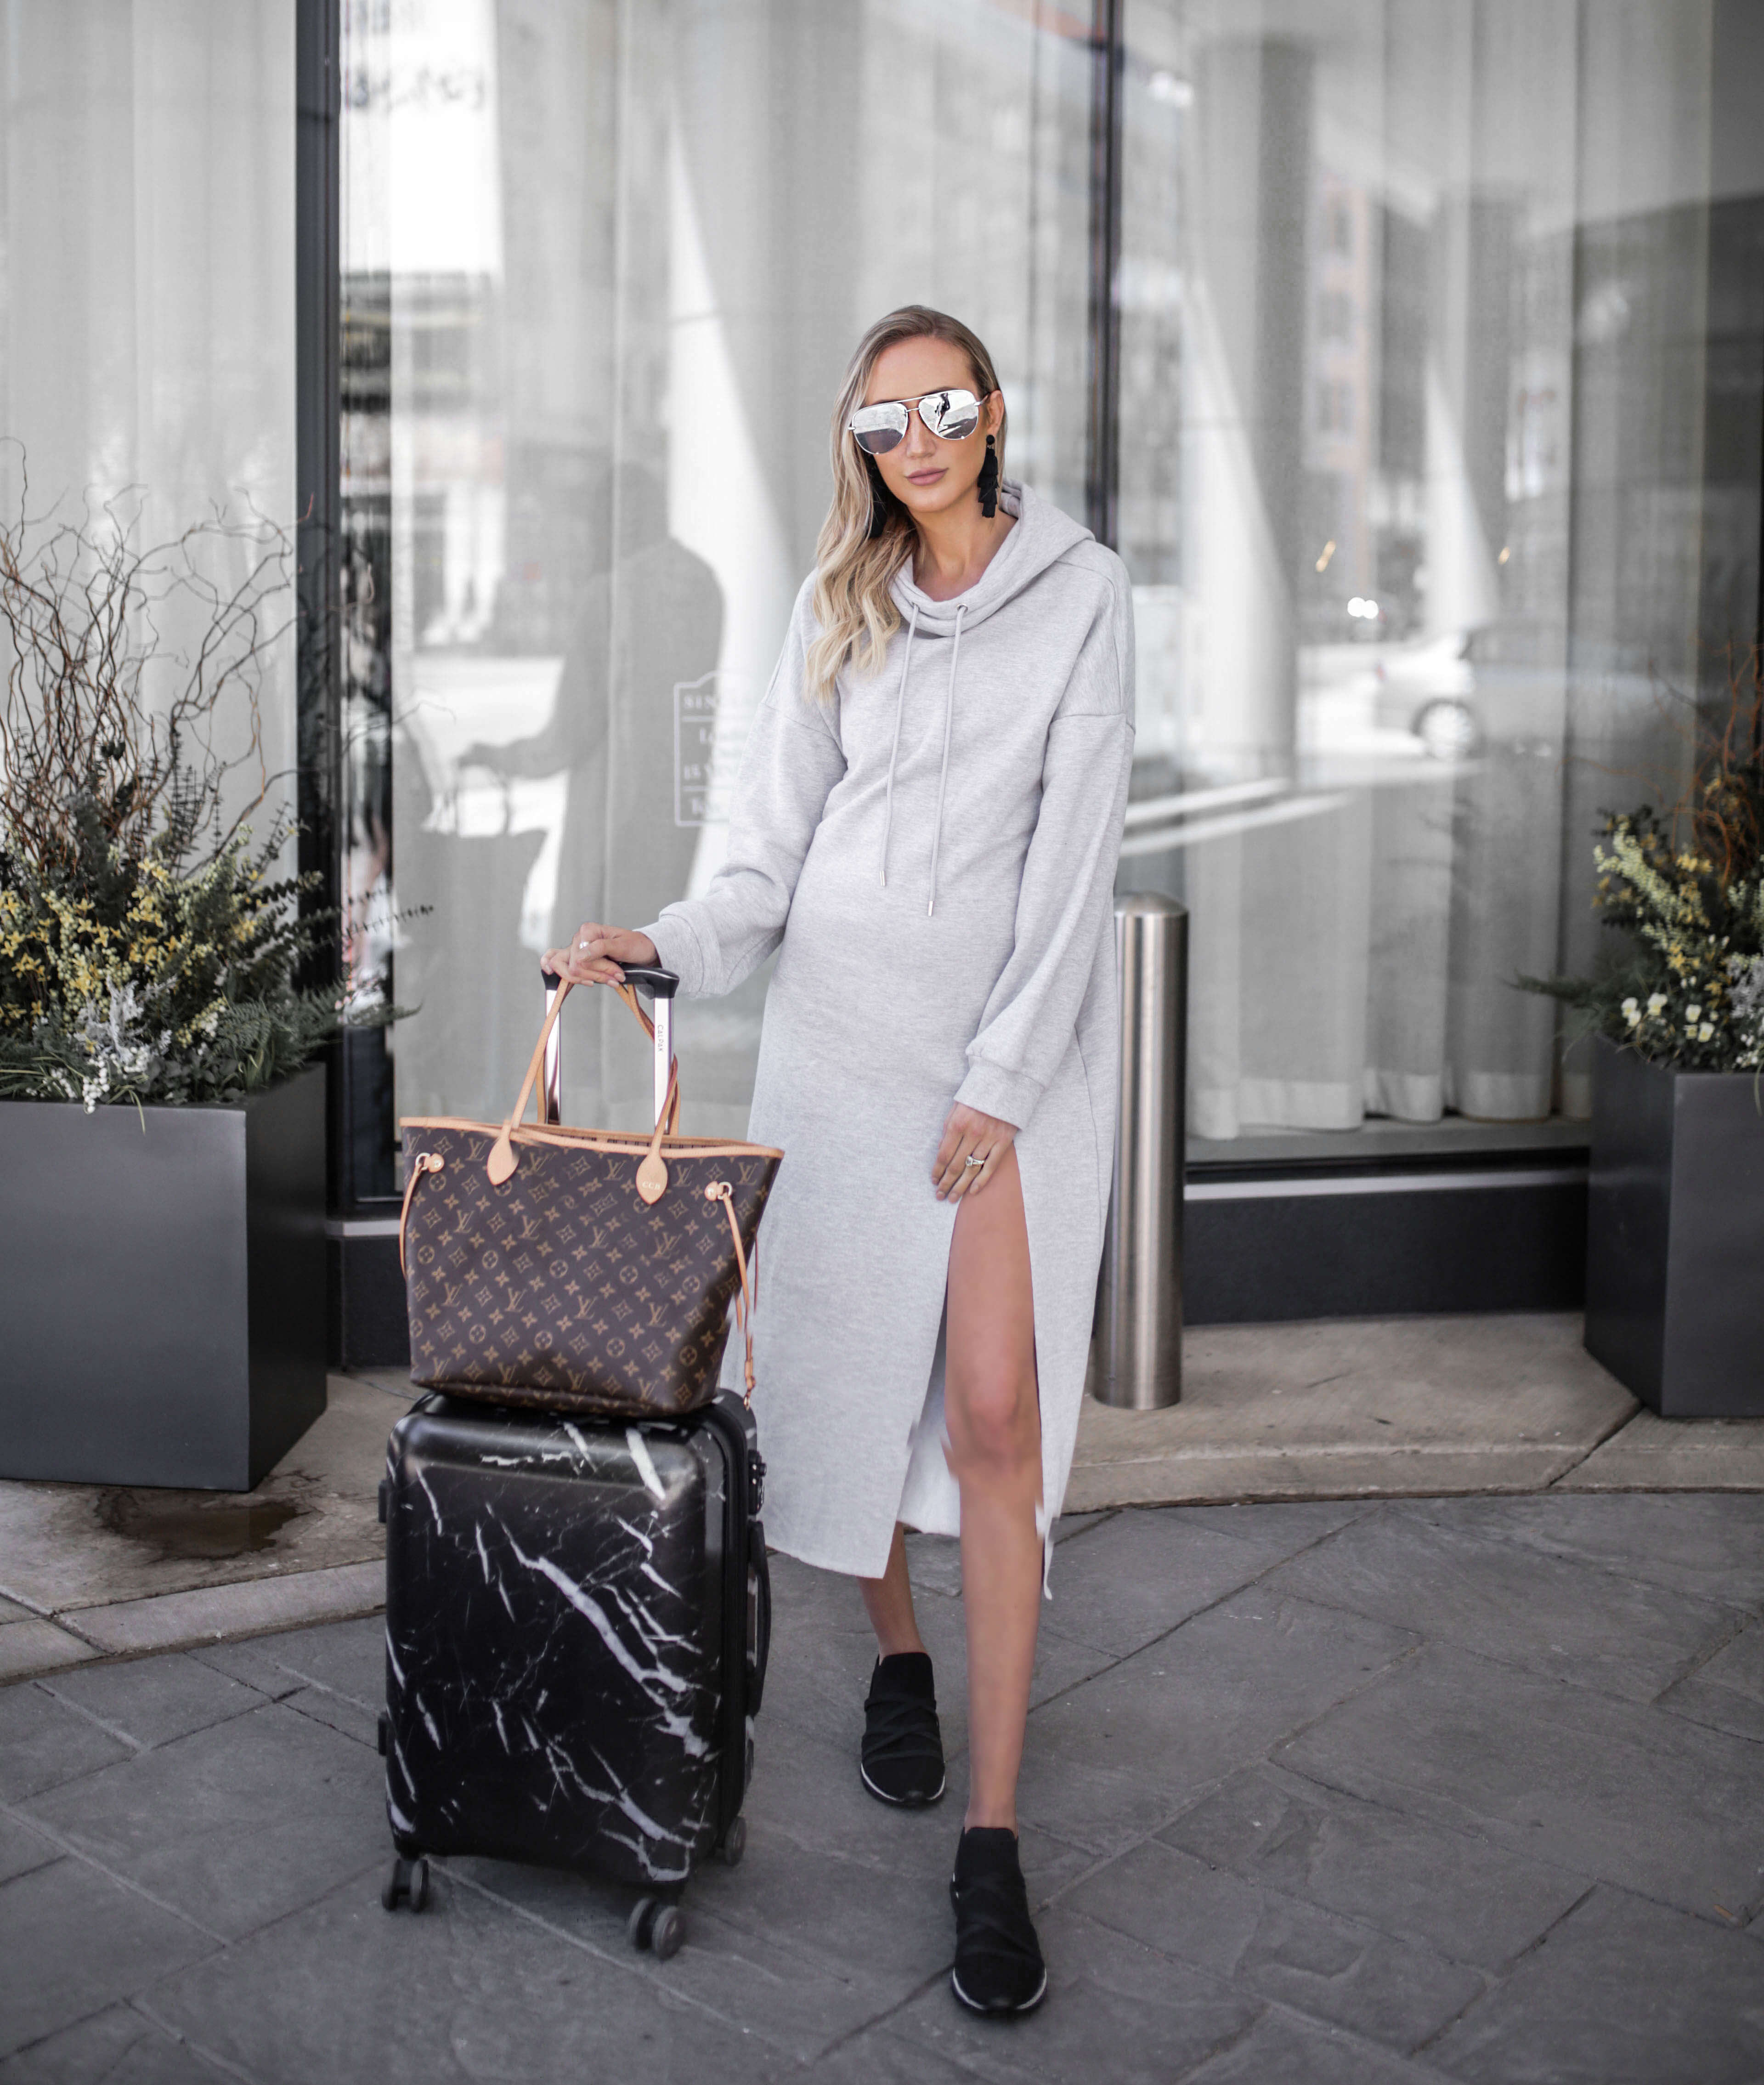 Pregnancy Travel Style, chic pregnancy style, travel style, comfortable travel outfit